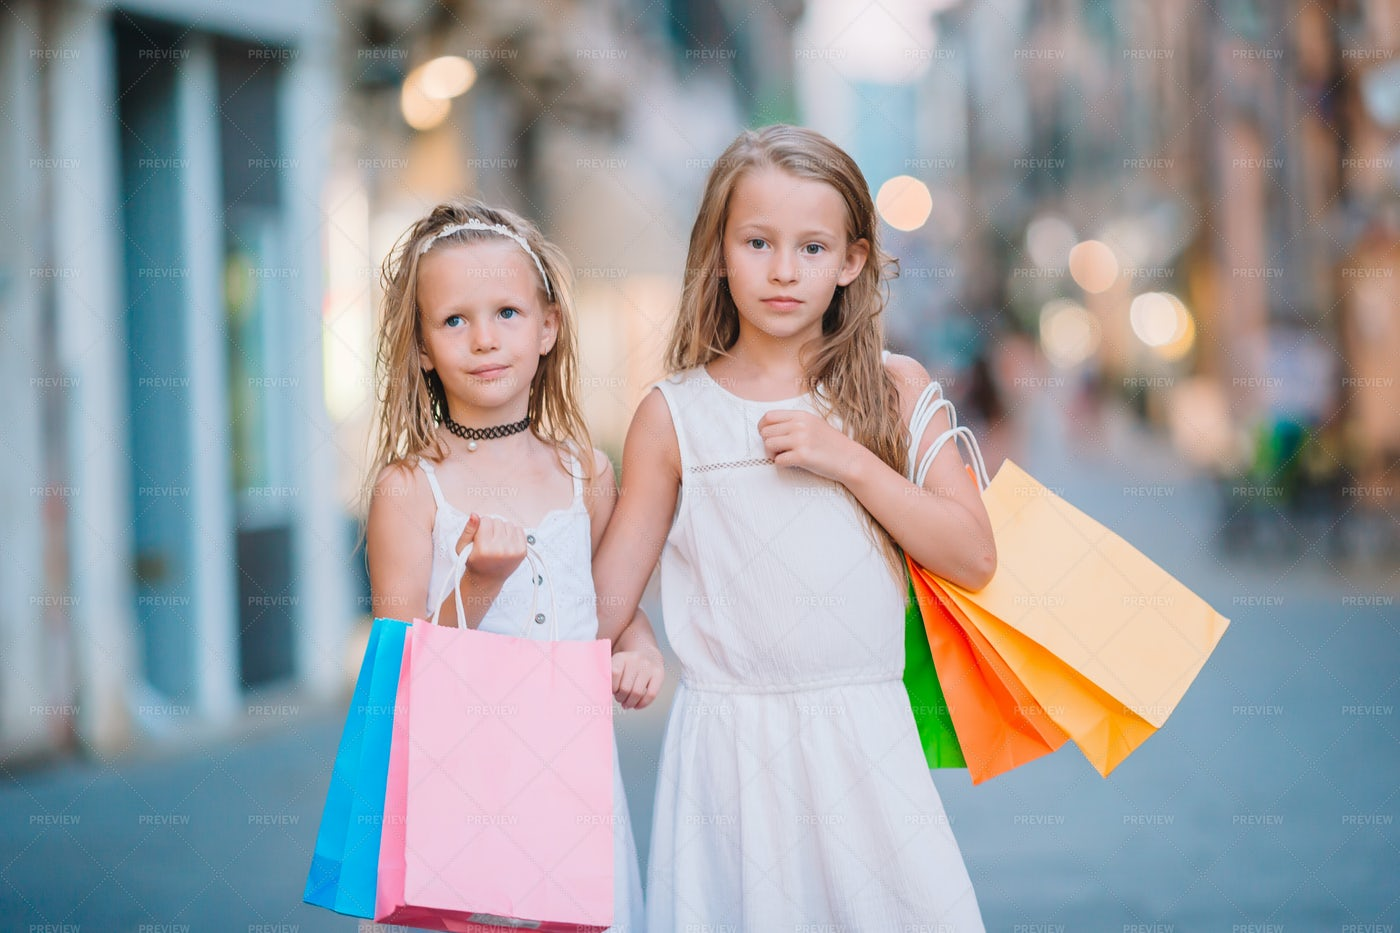 Little Girls With Shopping Bags: Stock Photos